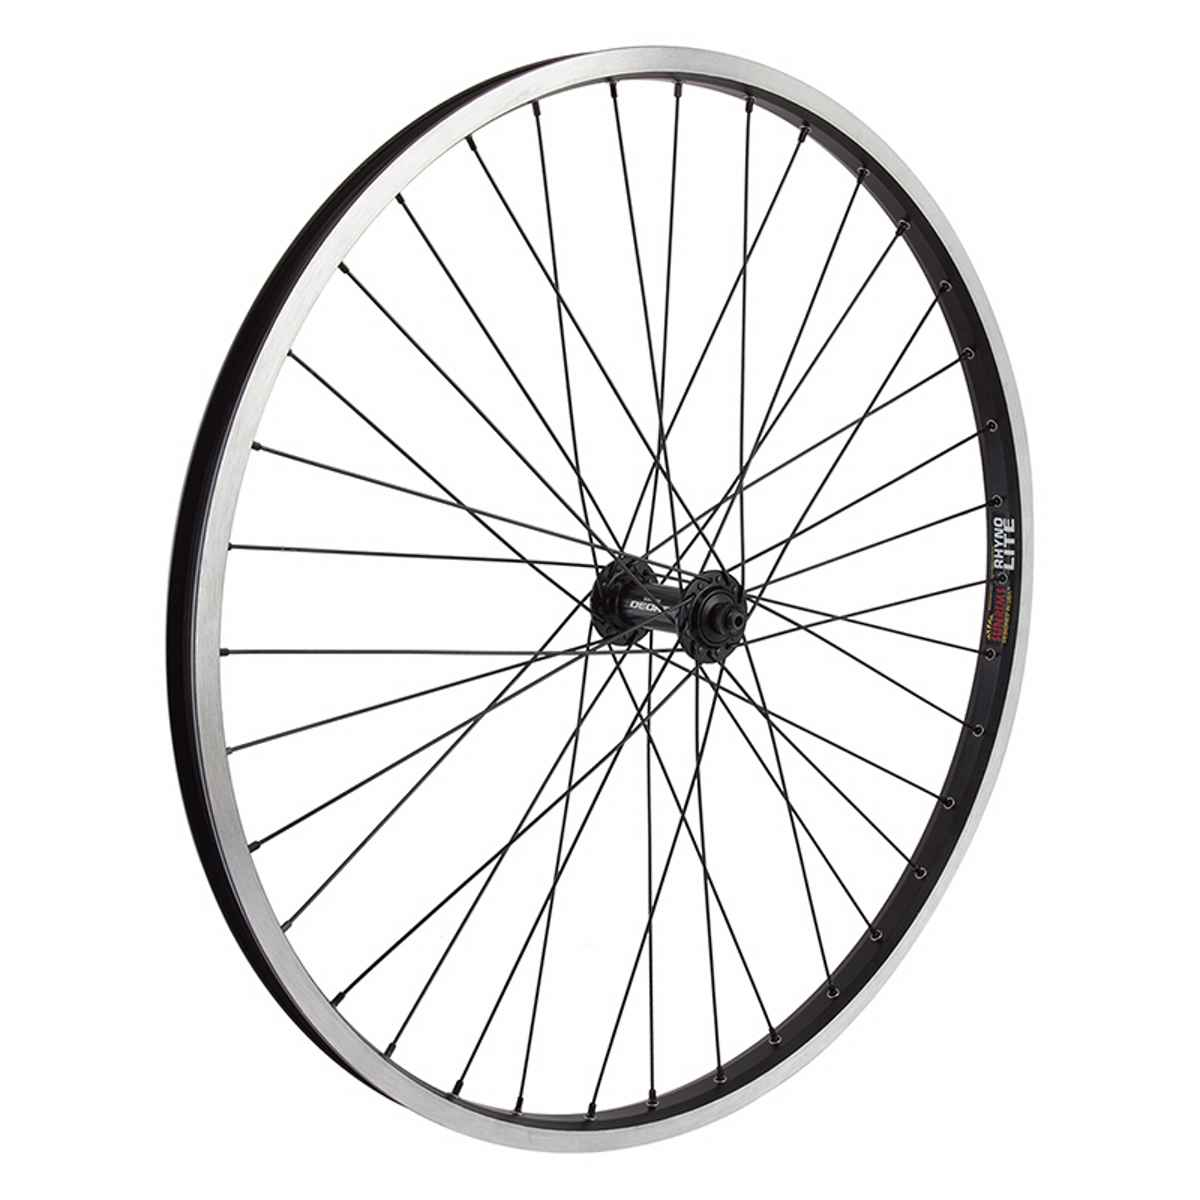 Wheel Masters 26 Inch Alloy Mountain Double Wall - 741521